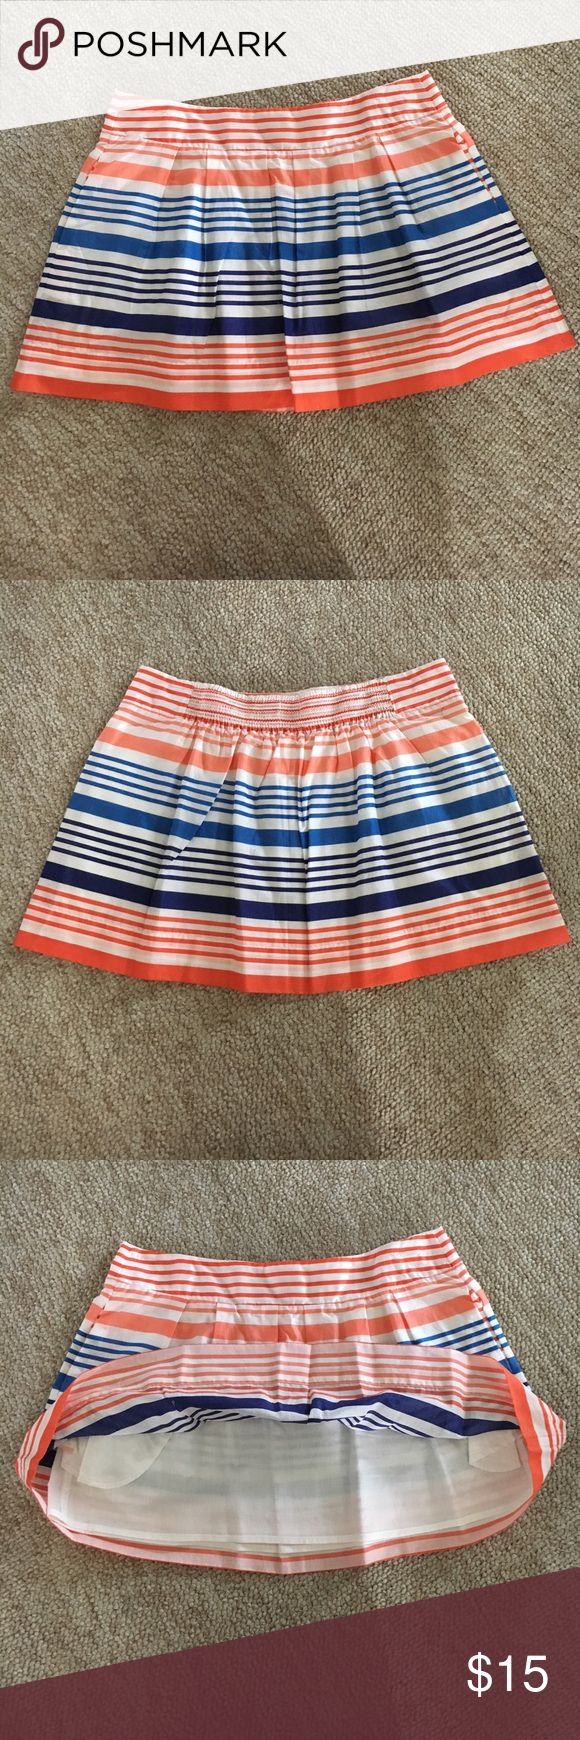 NWT AE Striped Skirt with Pockets New never been worn American Eagle cream linen skirt with orange, cobalt blue, & navy blue stripes. Has pockets! American Eagle Outfitters Skirts